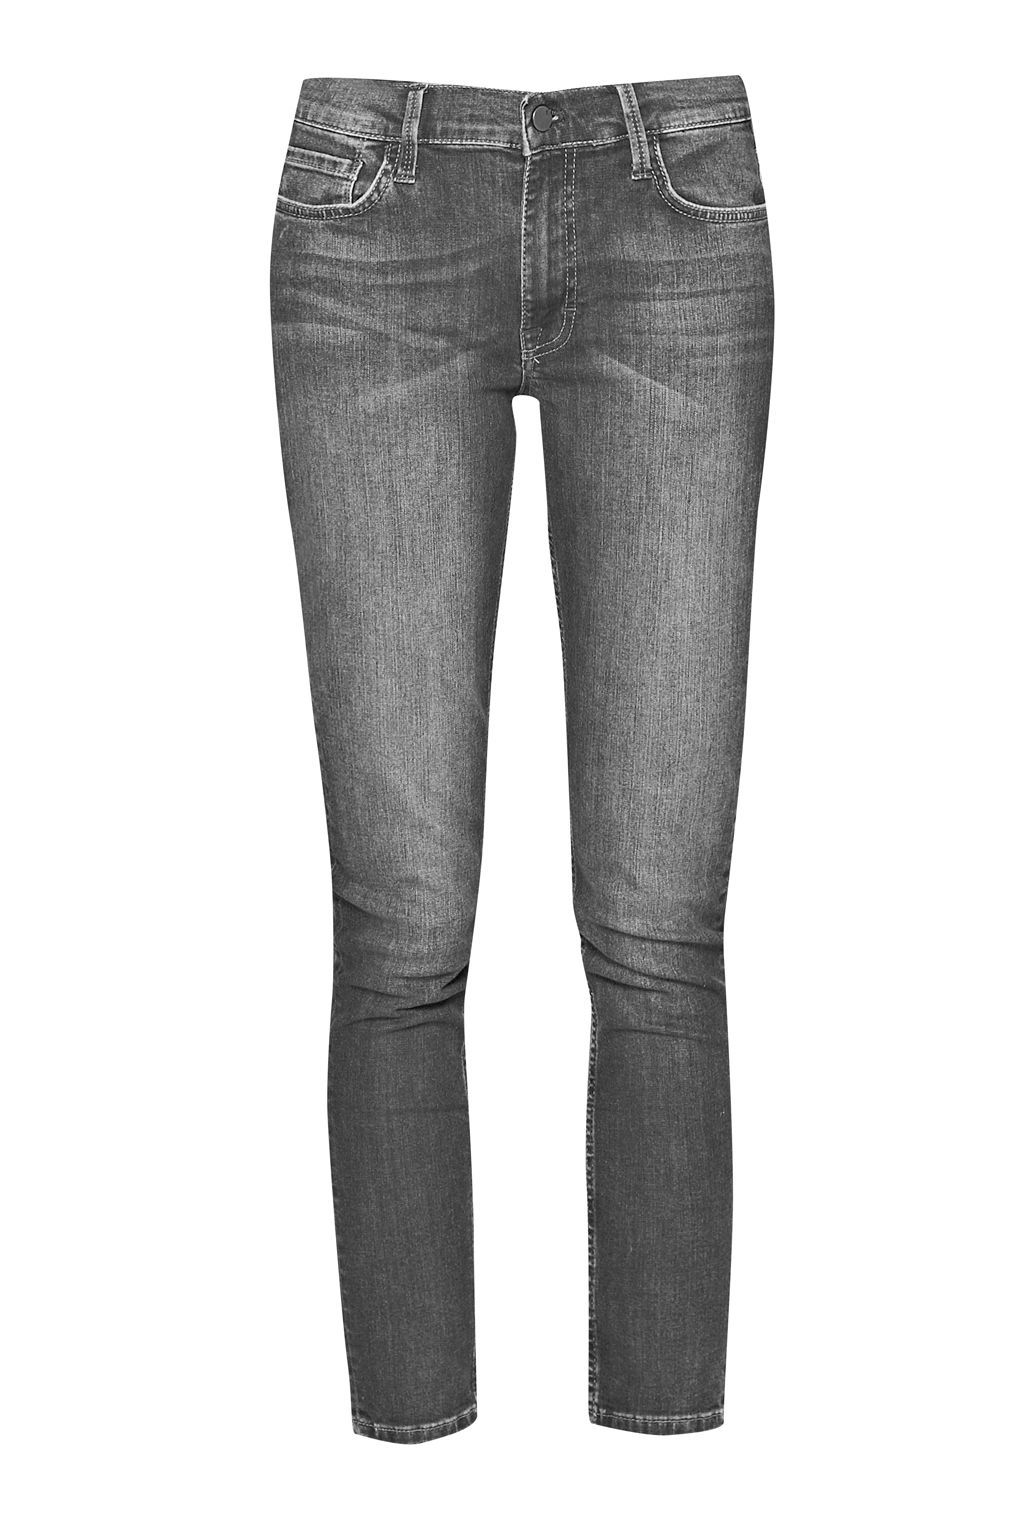 Skinny Stretch Rebound Denim, Charcoal - style: skinny leg; length: standard; pattern: plain; pocket detail: traditional 5 pocket; waist: mid/regular rise; predominant colour: charcoal; occasions: casual; fibres: cotton - stretch; jeans detail: whiskering, washed/faded; texture group: denim; pattern type: fabric; season: s/s 2016; wardrobe: highlight